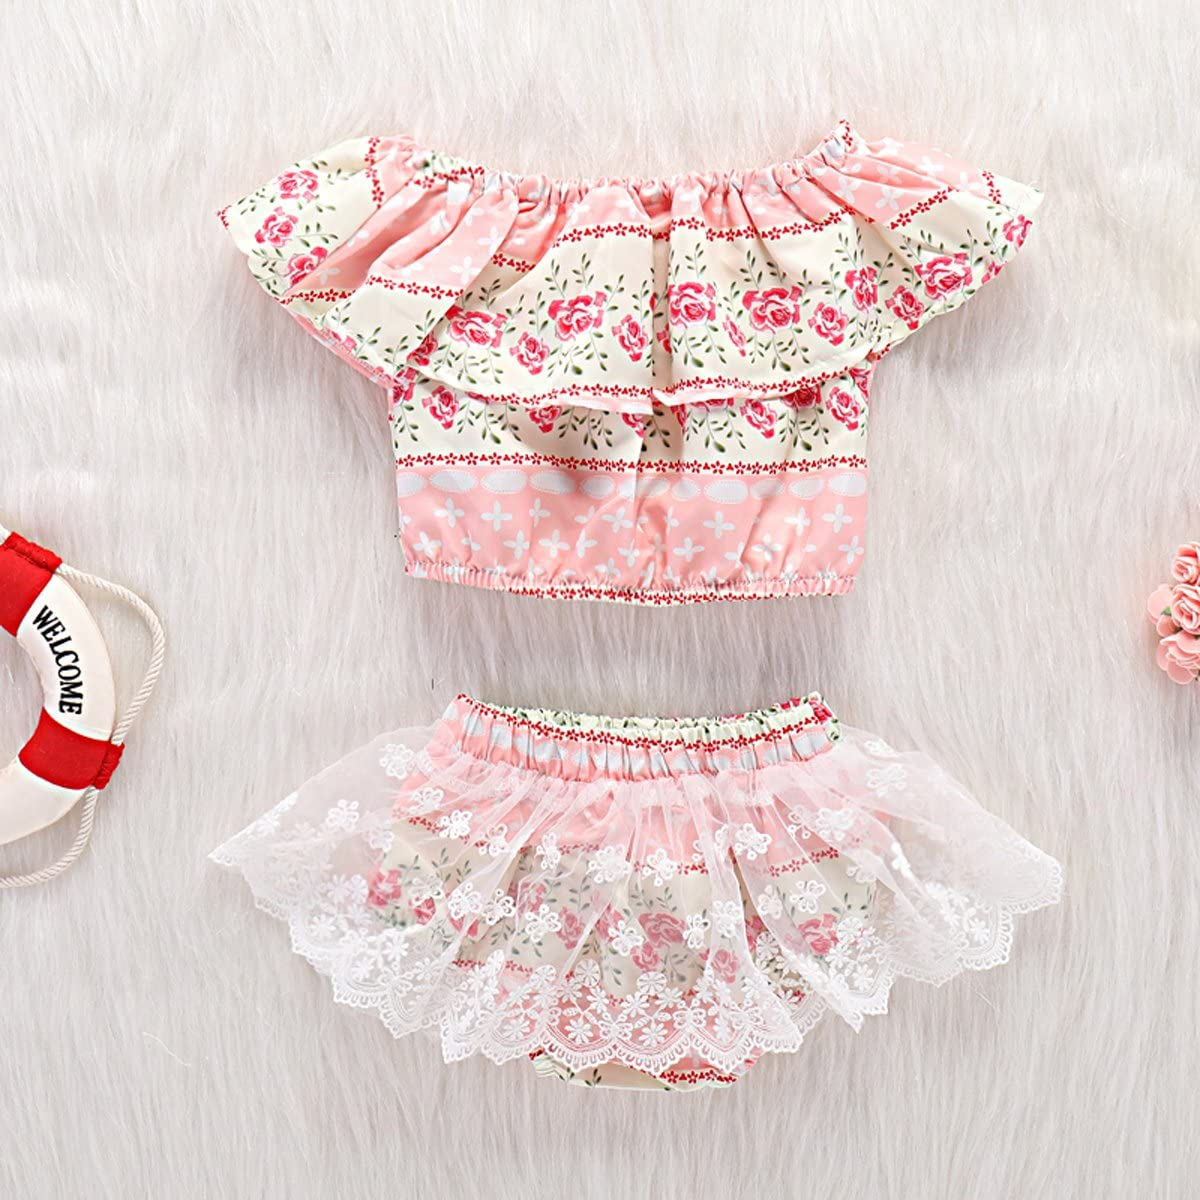 Baby Girls Floral Outfits Off Shoulder Ruffle Top Lace Shorts Set